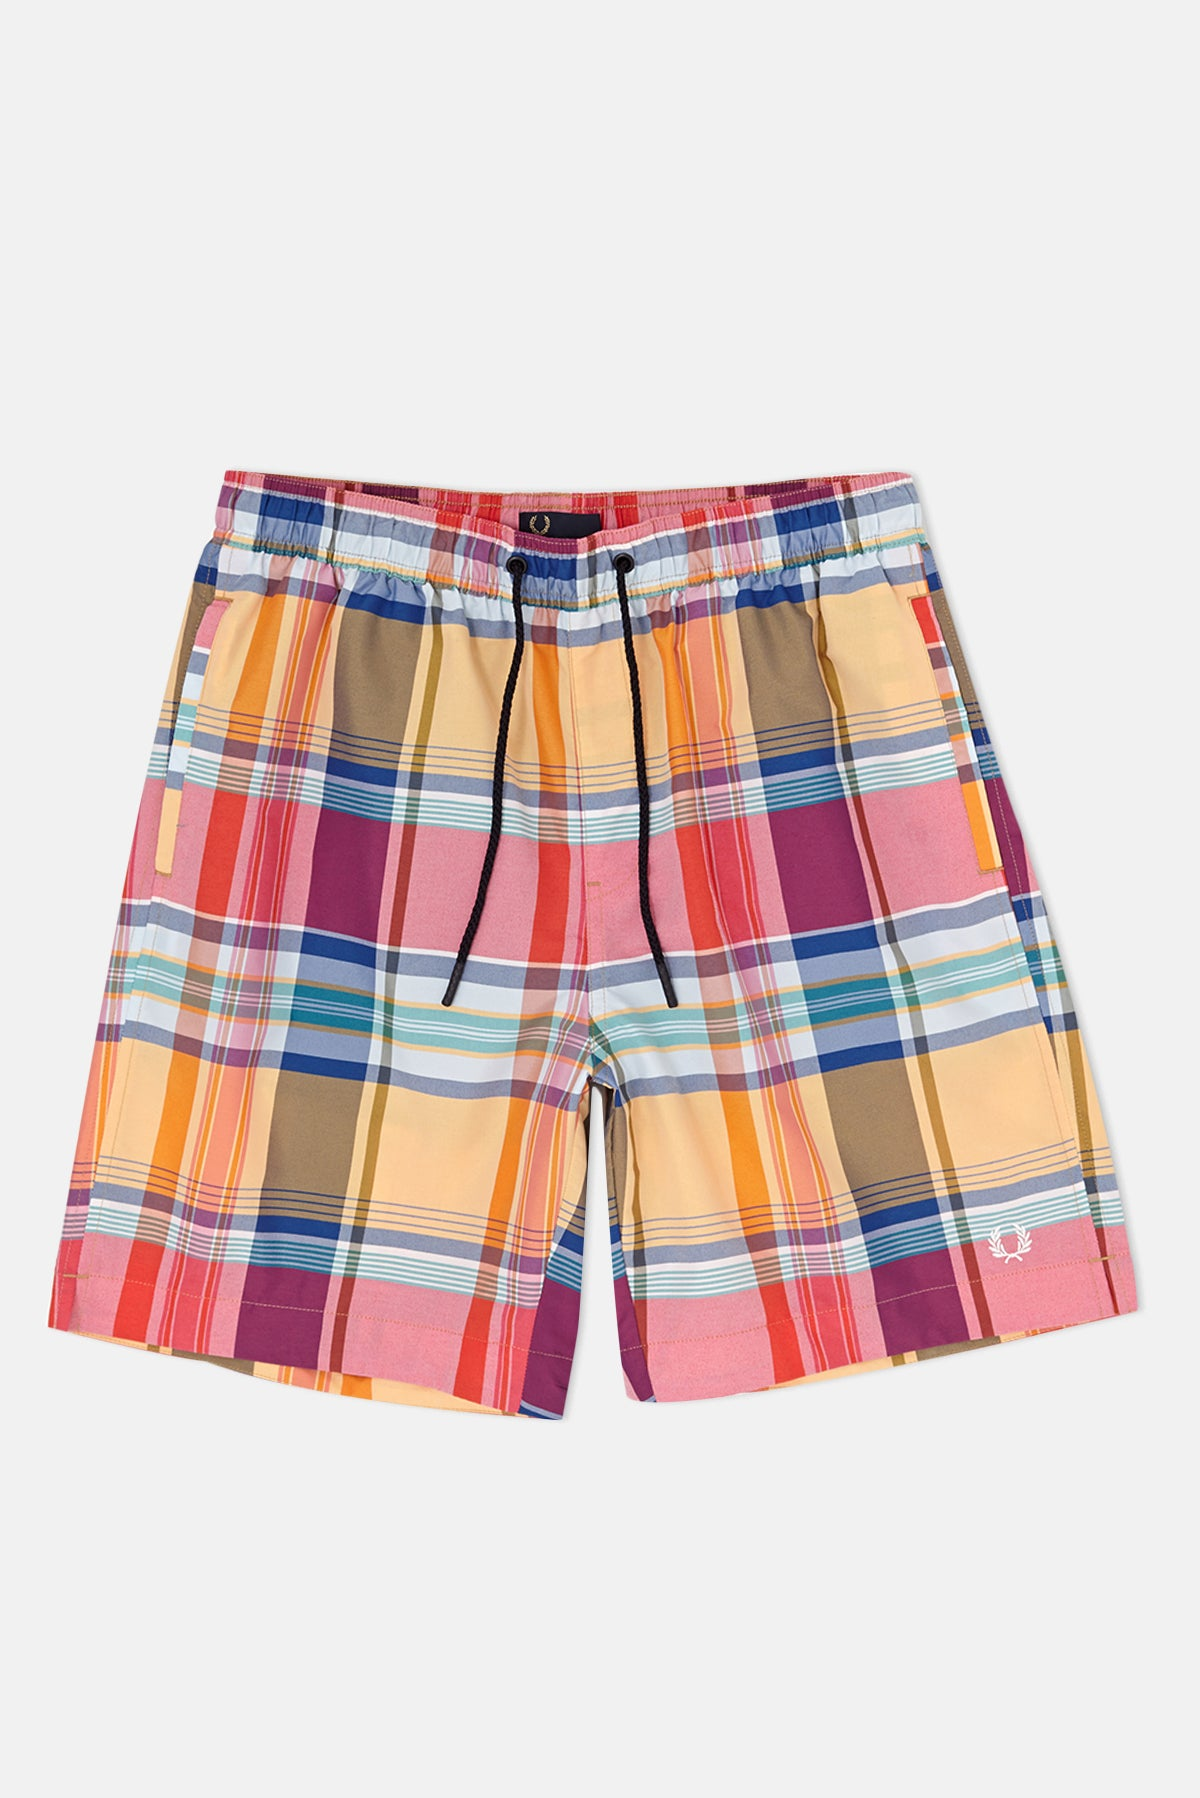 c8a73ad389 Fred Perry Madras Check Swim Shorts available from Priory